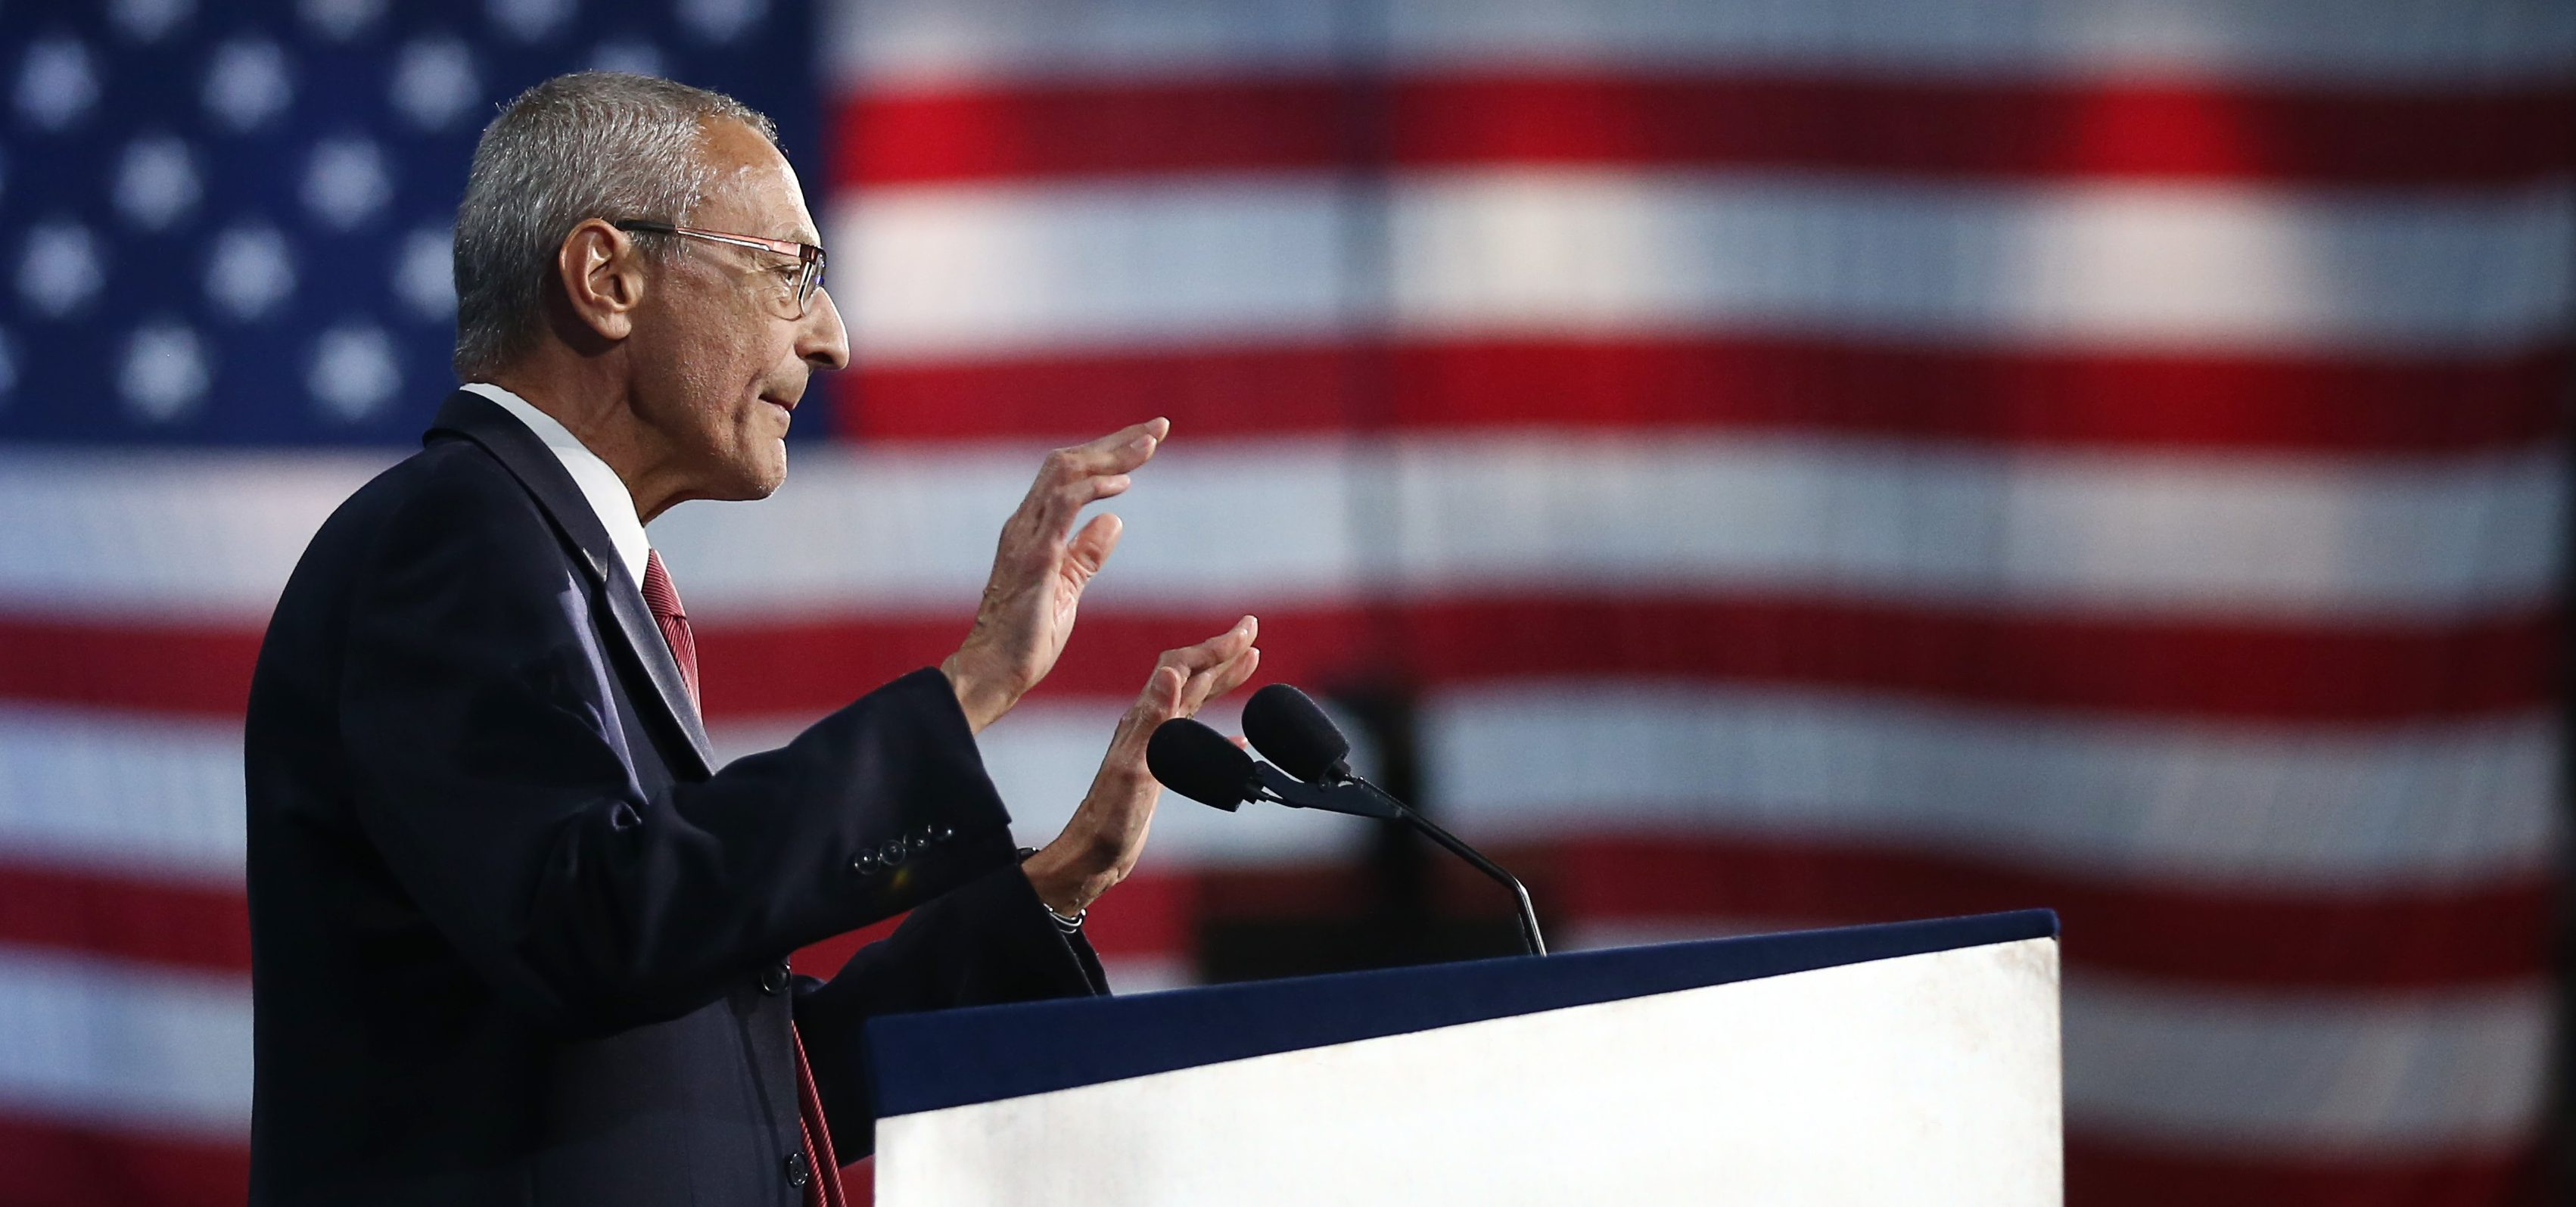 John Podesta, chairman of the 2016 Hillary Clinton presidential campaign, addresses the crowd at Hillary Clinton's election night rally in New York, November 9, 2016. REUTERS/Carlos Barria